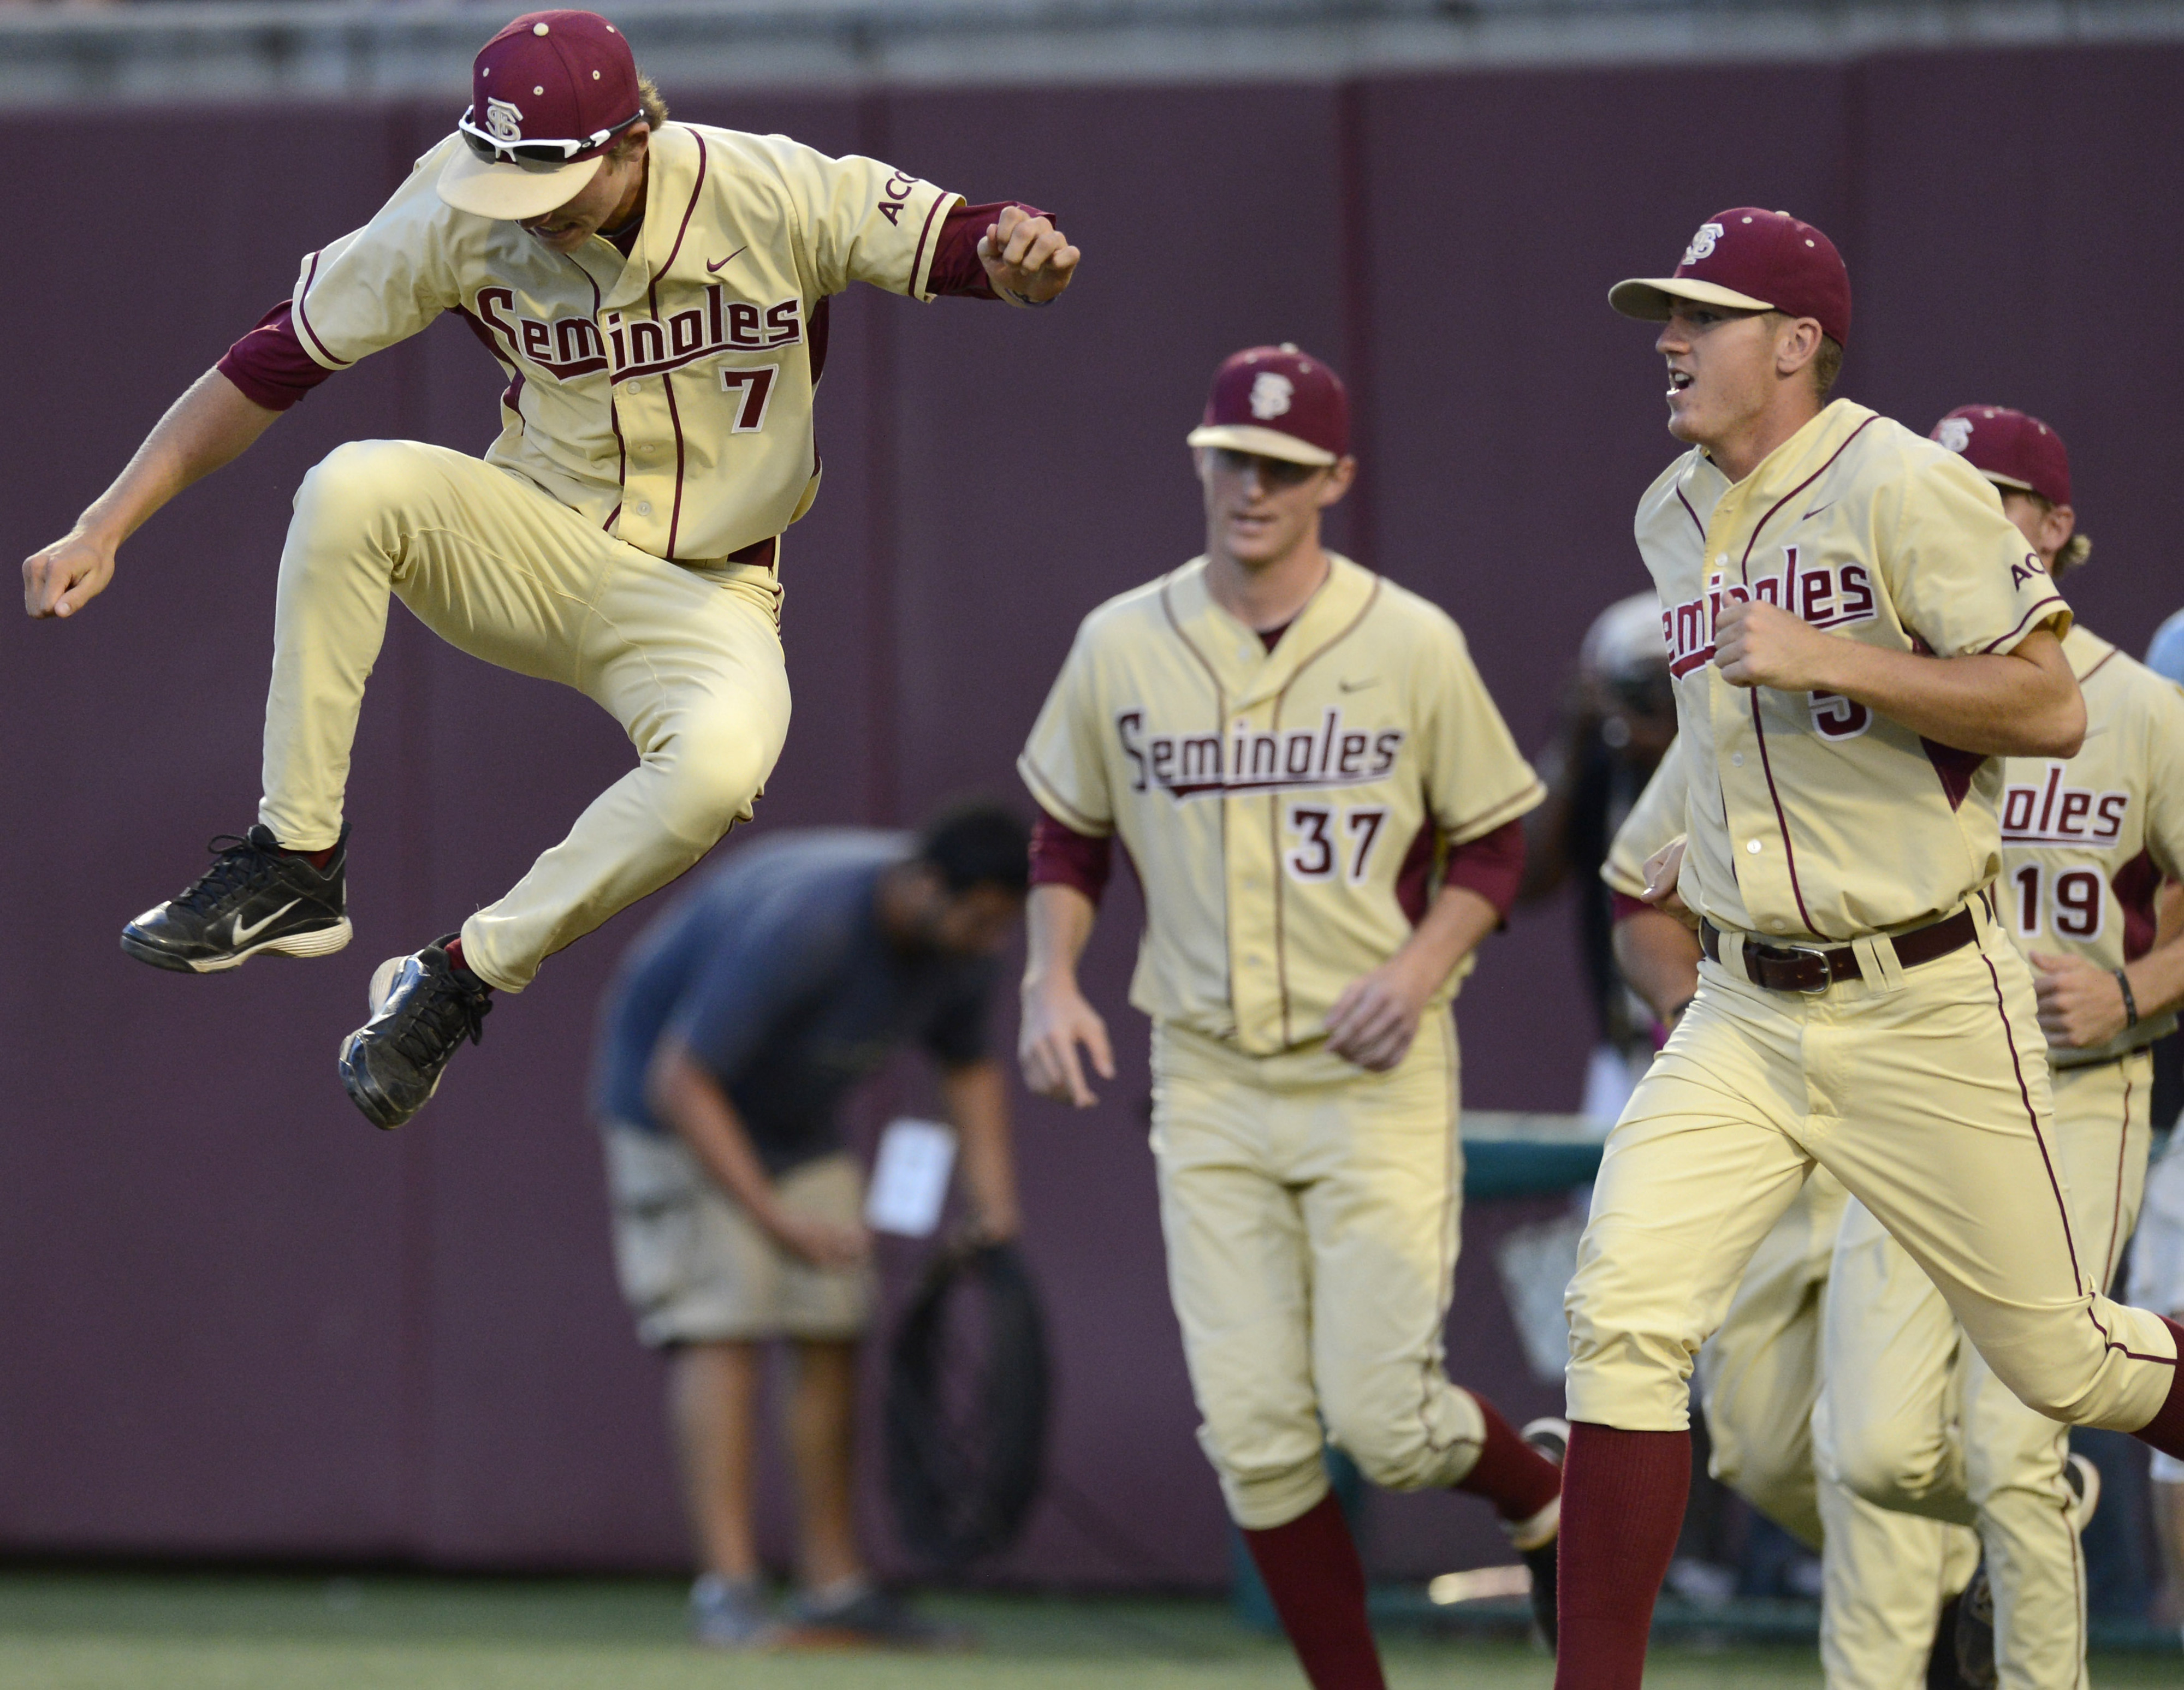 Luke Weaver, or any Seminole for that matter, was not celebrating like that this weekend